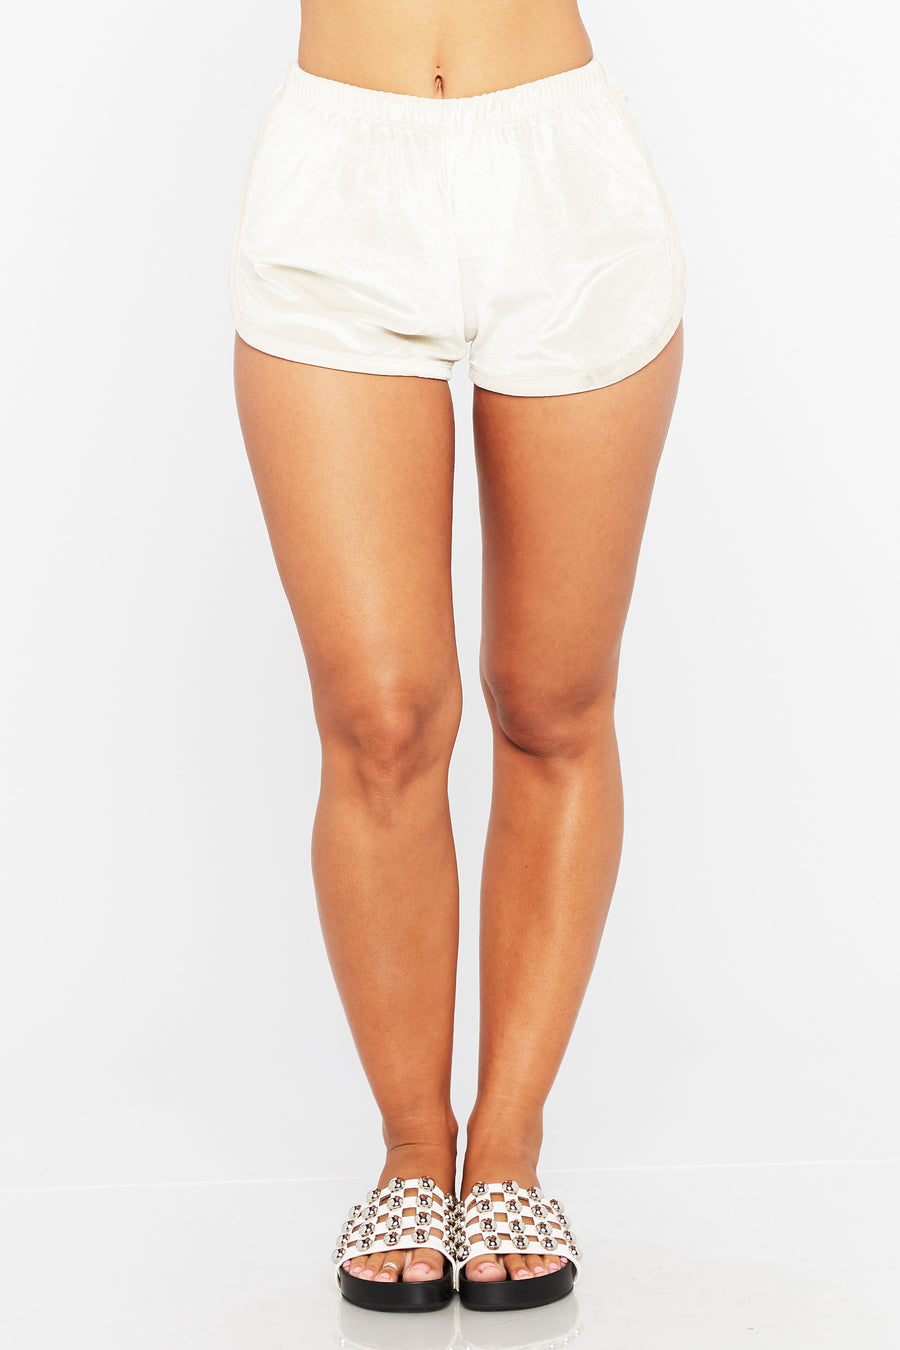 Saba Velvet Short - HoneyBum